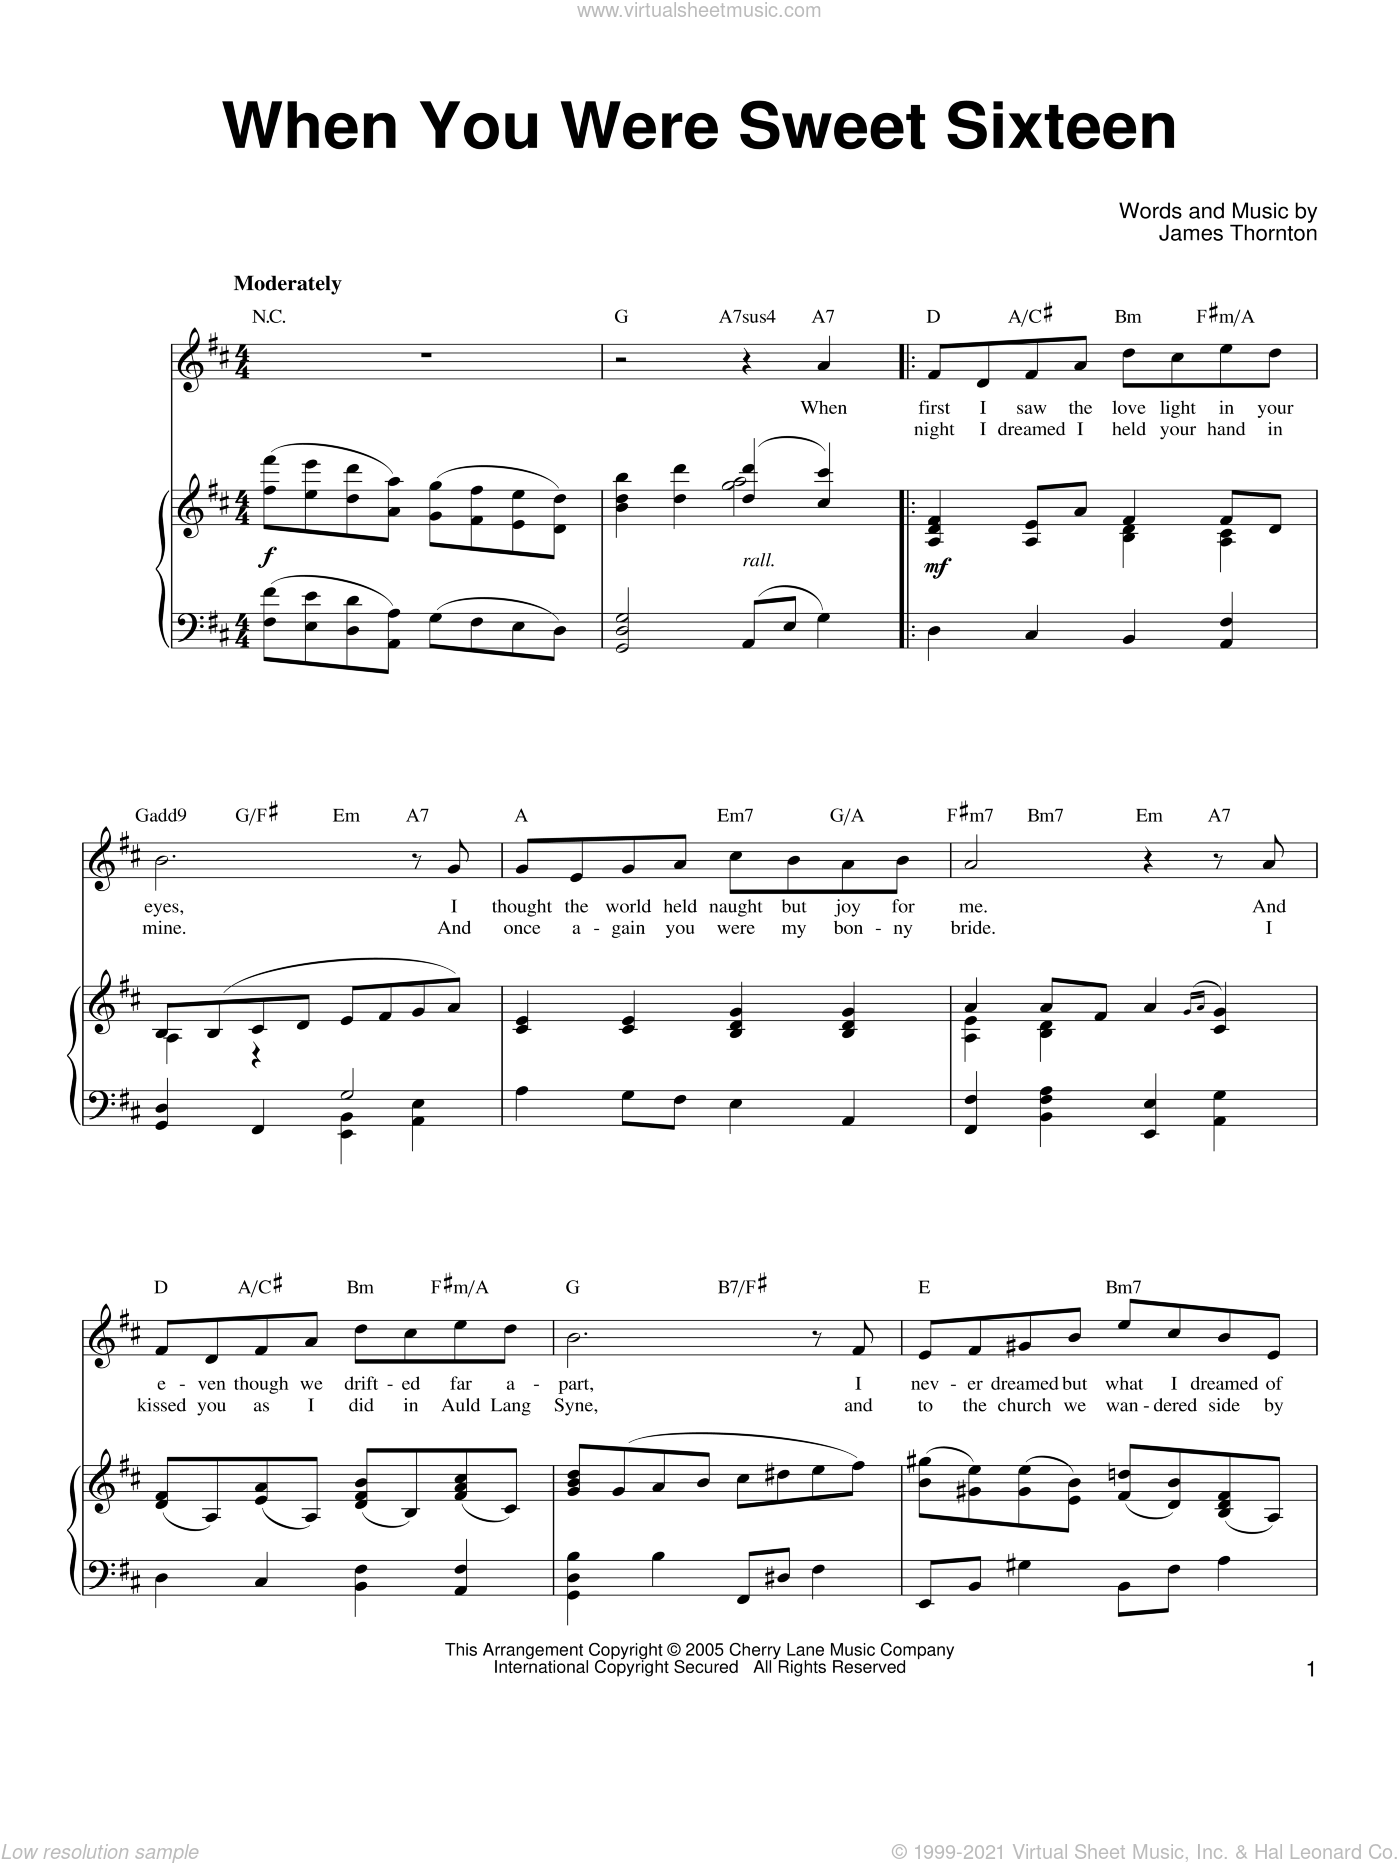 When You Were Sweet Sixteen sheet music for voice, piano or guitar by Ronan Tynan and James Thornton, classical score, intermediate skill level